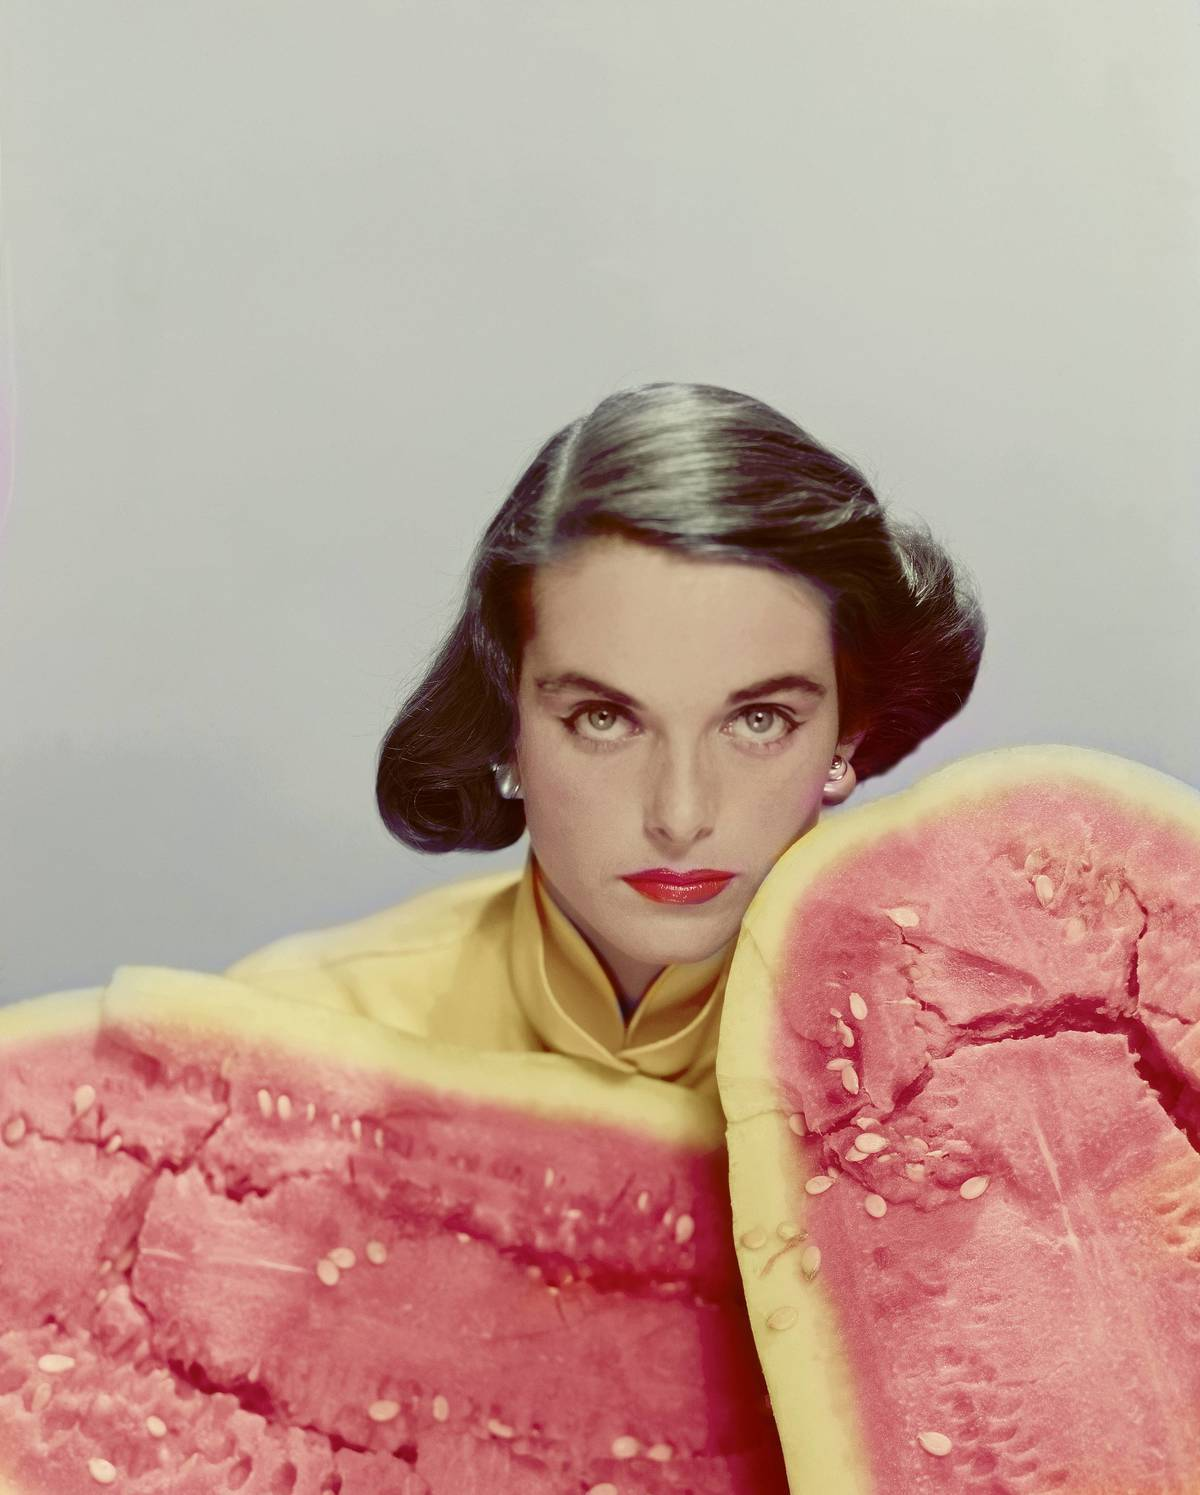 A model poses near giant slices of watermelon.